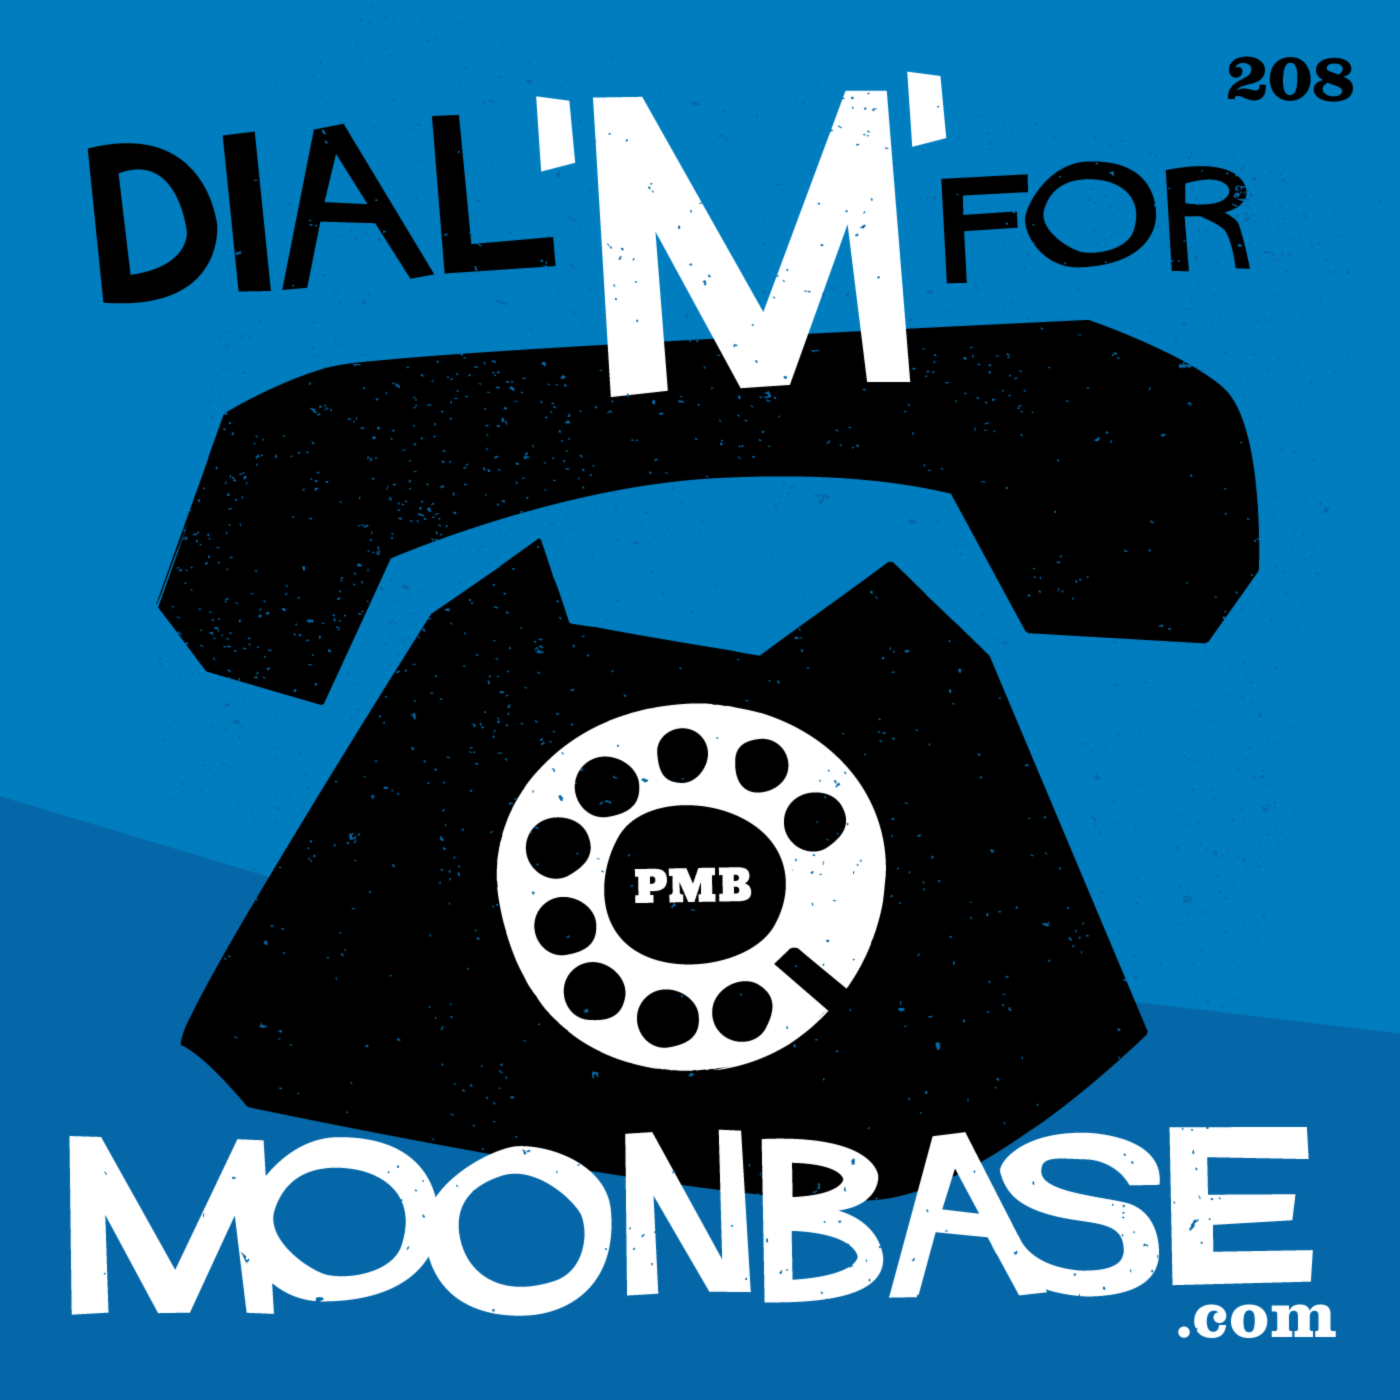 PMB208: Dial M For Moonbase